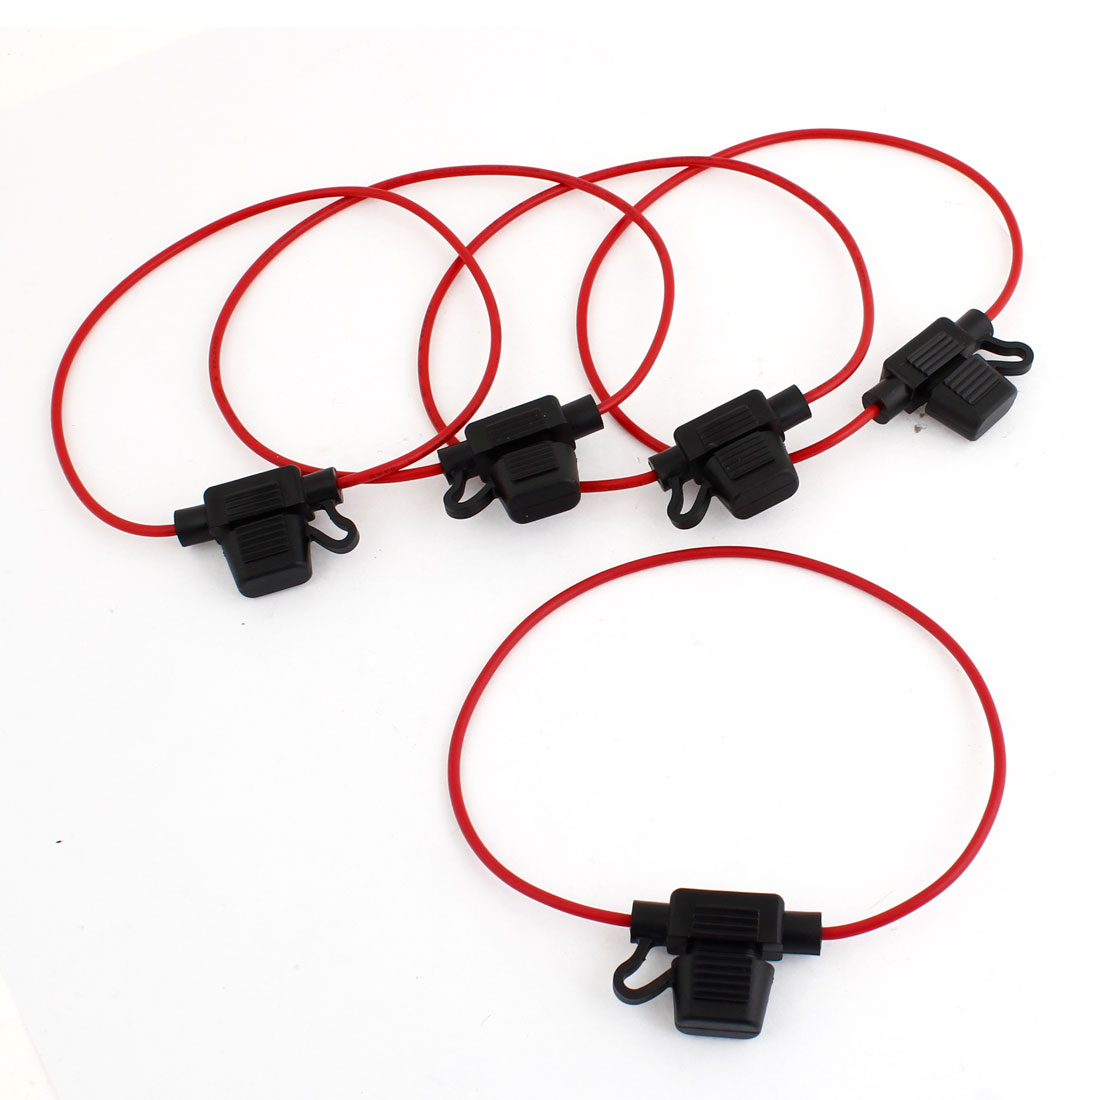 Waterproof Car Boat Truck Red Wire Mini ATC Blade Fuse Holder 32V 20A 5 Pcs